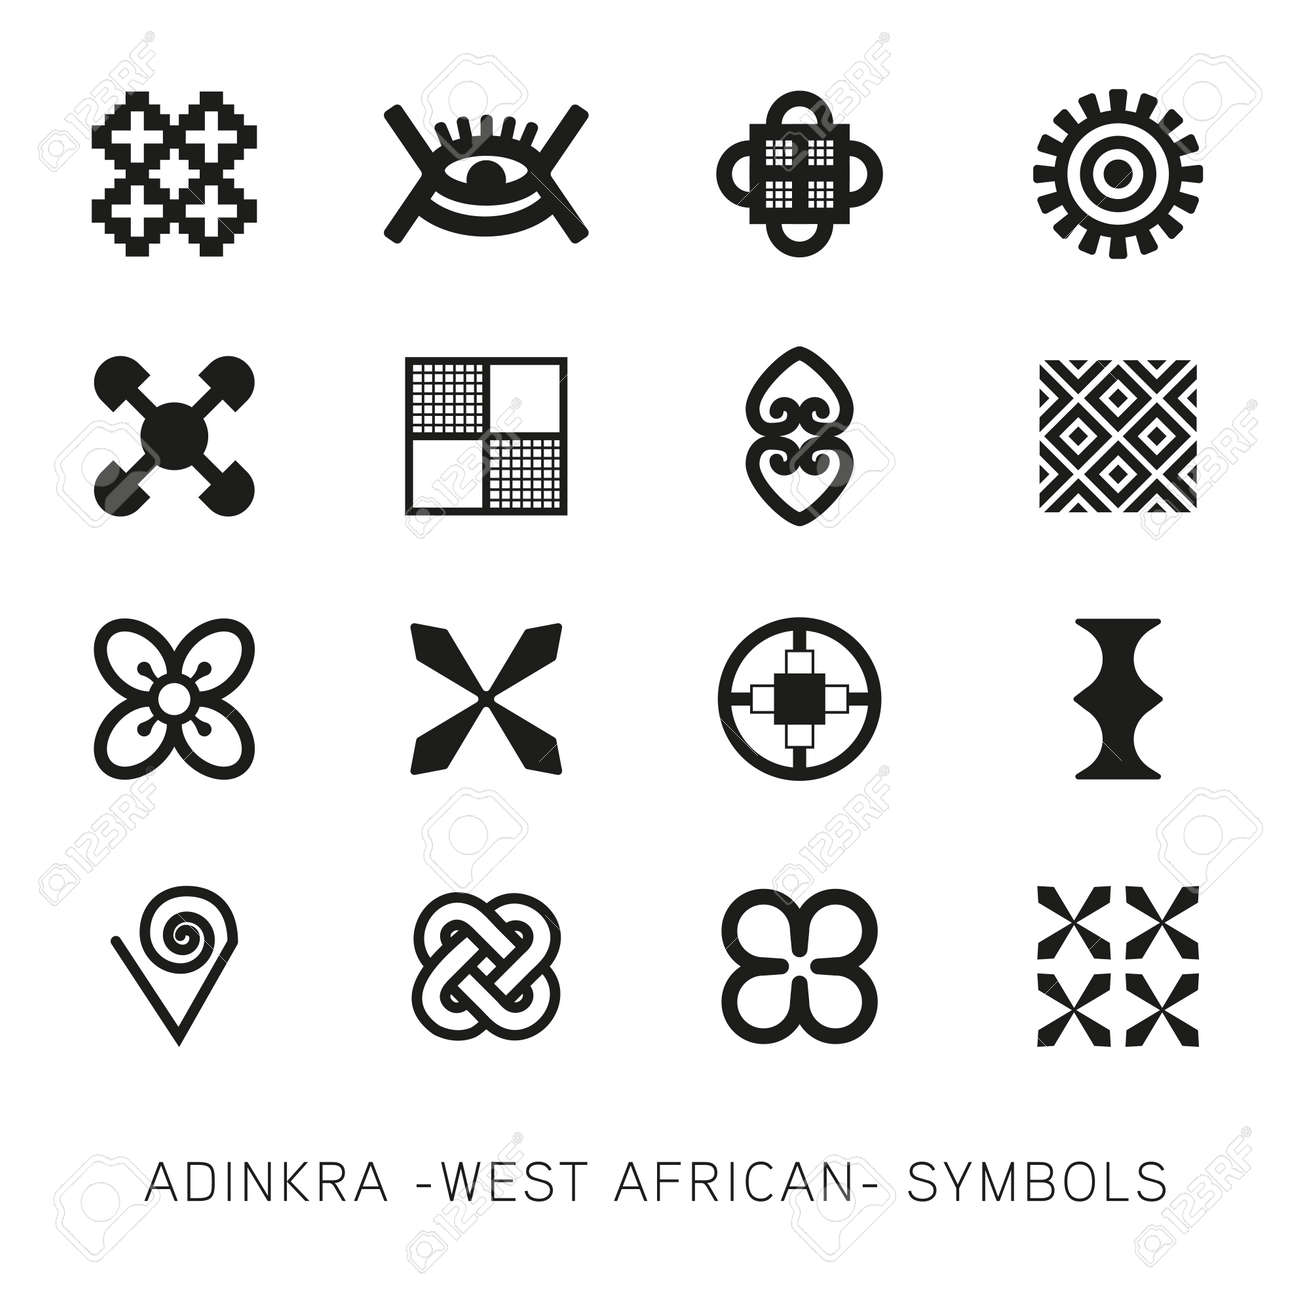 Set of akan and adinkra west african symbols royalty free cliparts set of akan and adinkra west african symbols stock vector 74291374 biocorpaavc Image collections